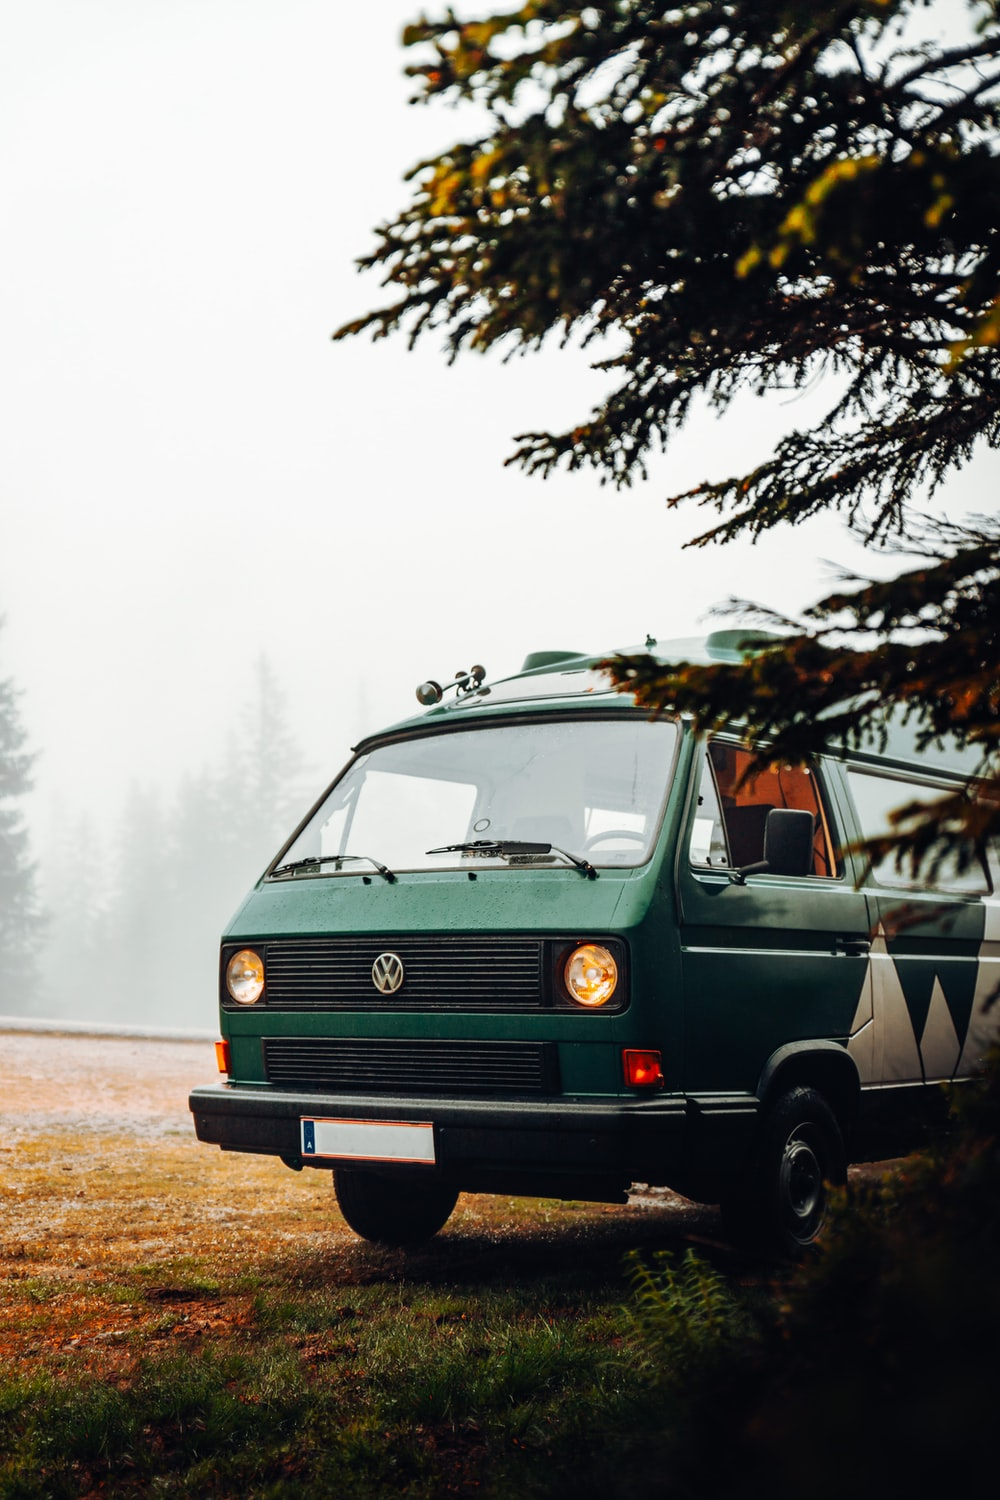 green volkswagen t-2 on road during daytime